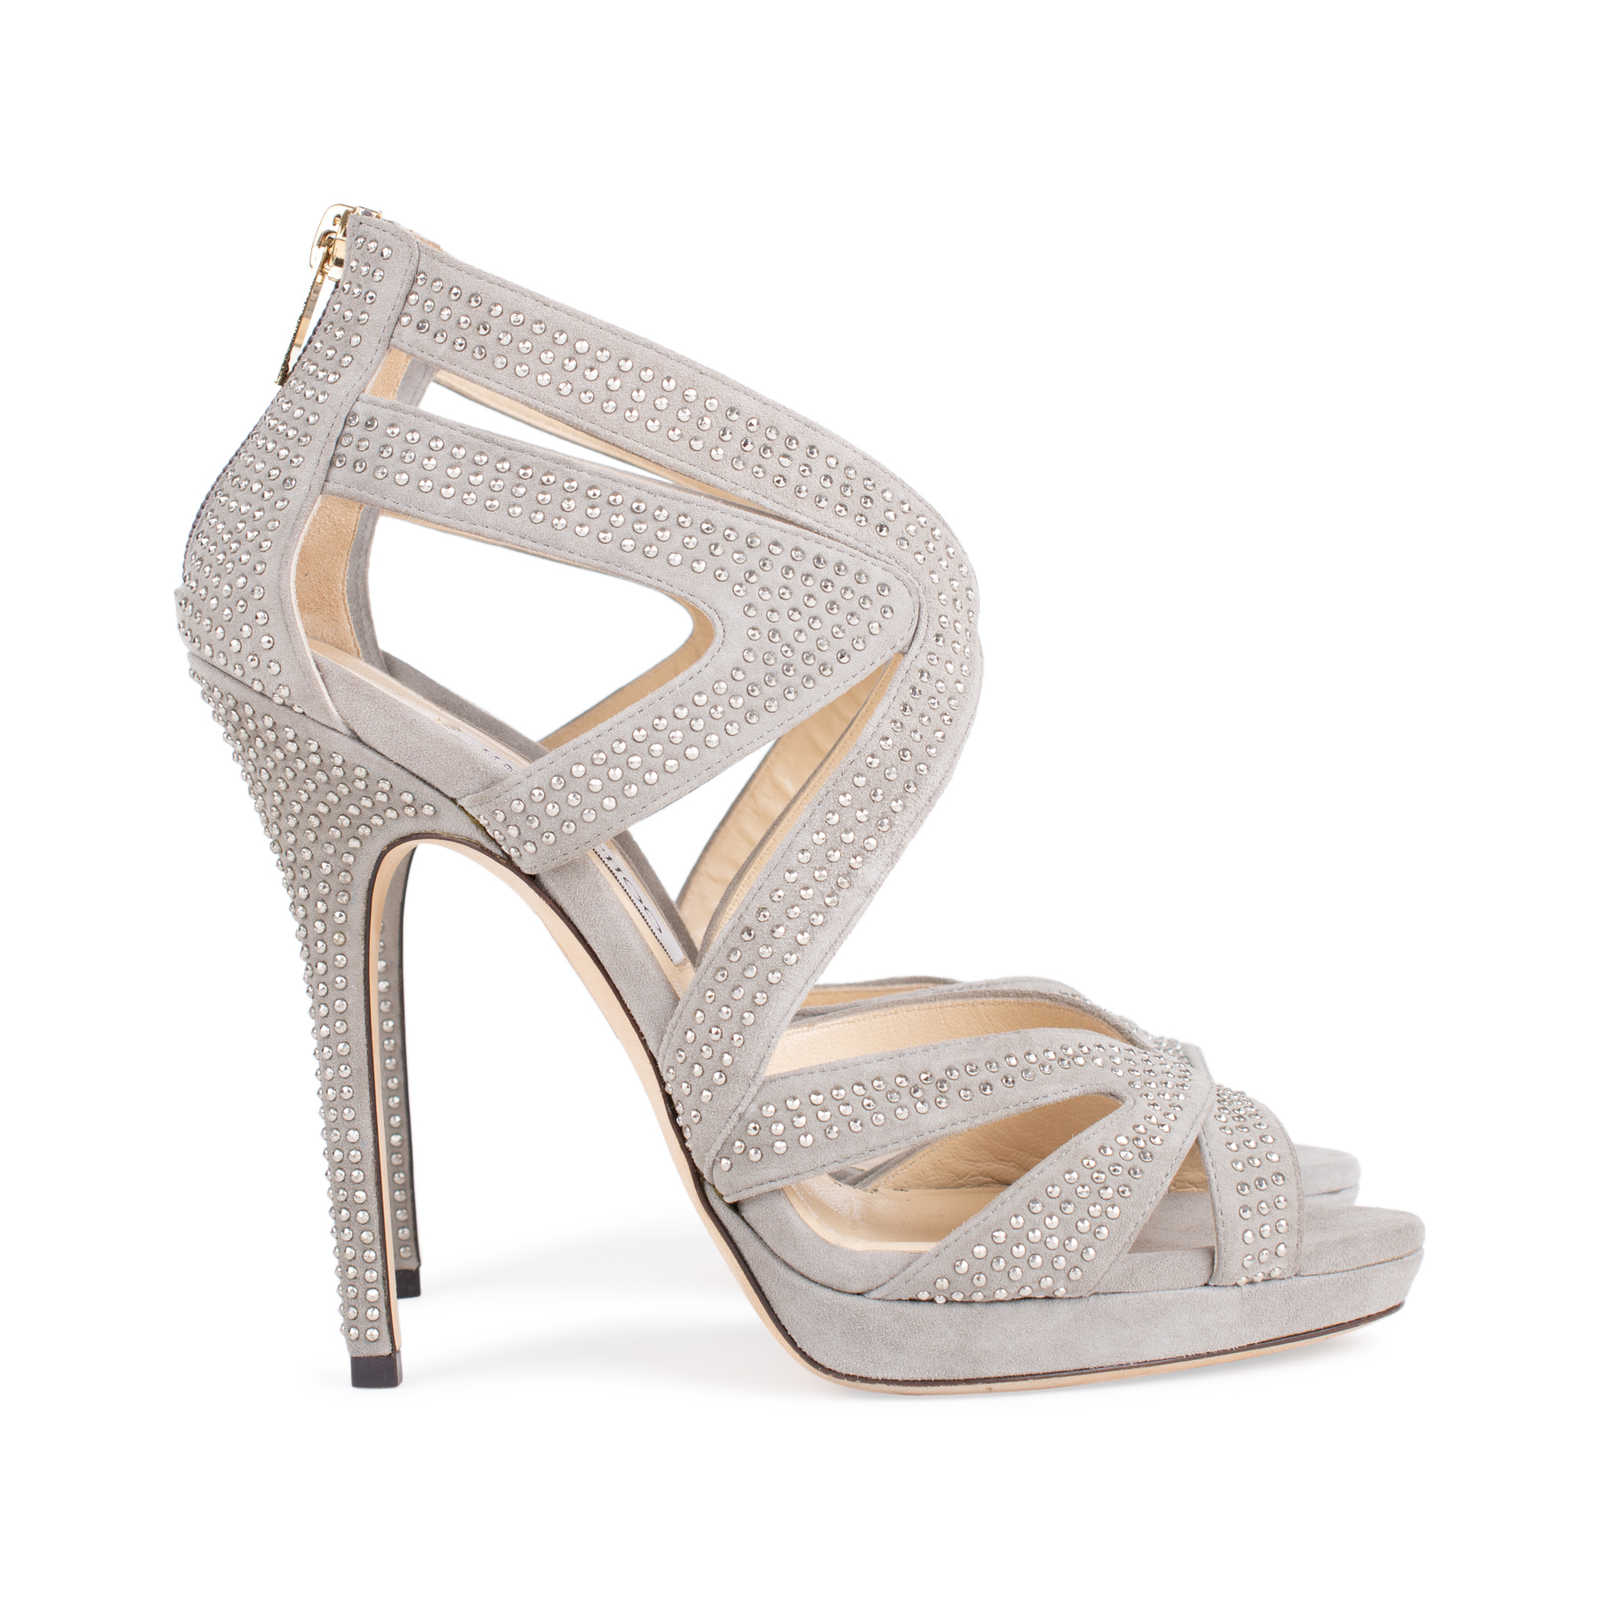 1fbf35c13fce ... Authentic Second Hand Jimmy Choo Suede Collar Stud Sandals  (PSS-544-00010) ...